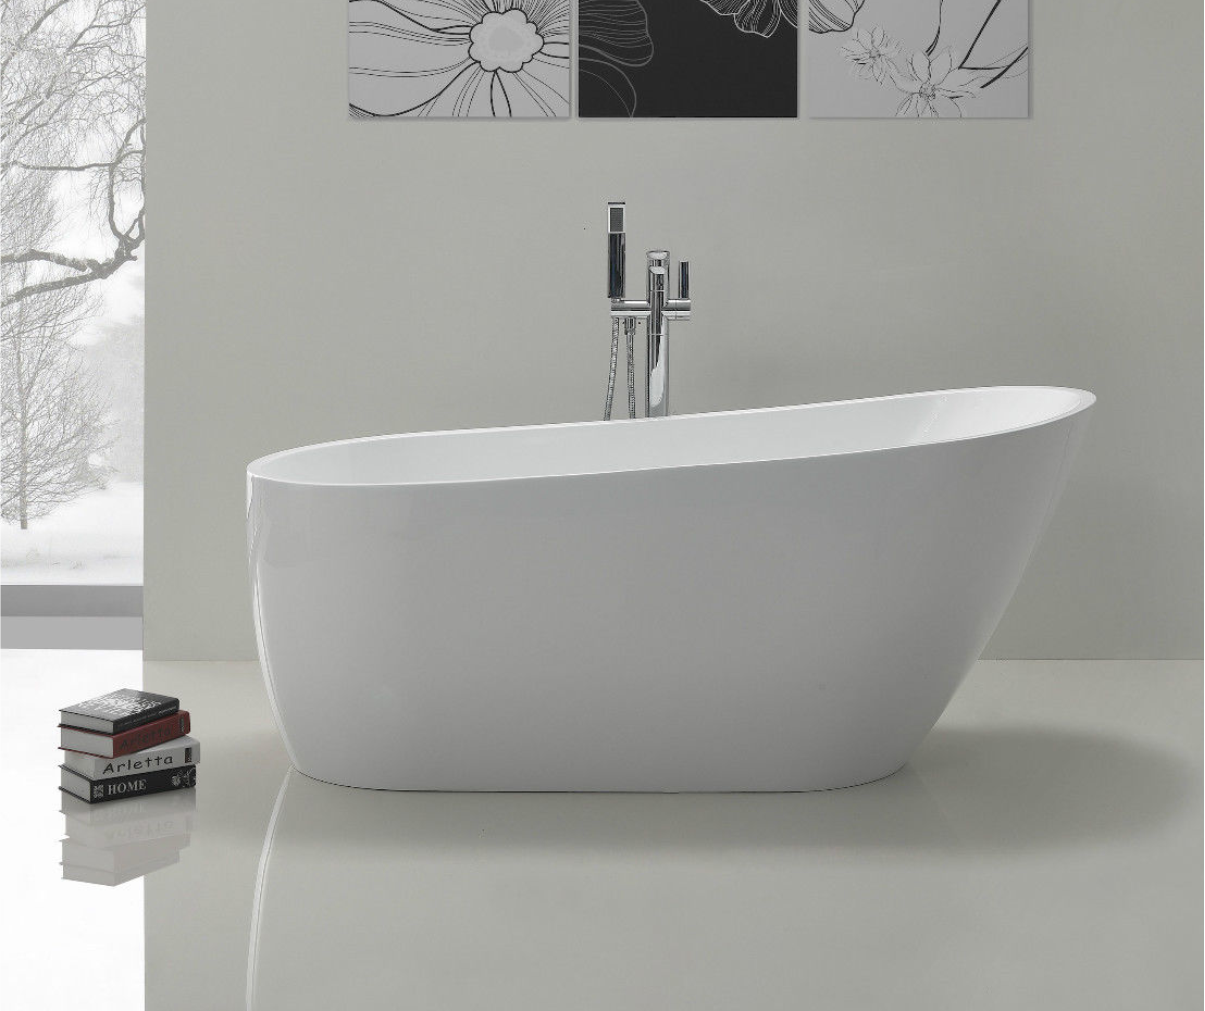 appearance faucet a tub free bath freestanding modern mounted smooth seamless bathroom coley and with l pairs standing features filler stunning wall of acrylic in this or well the